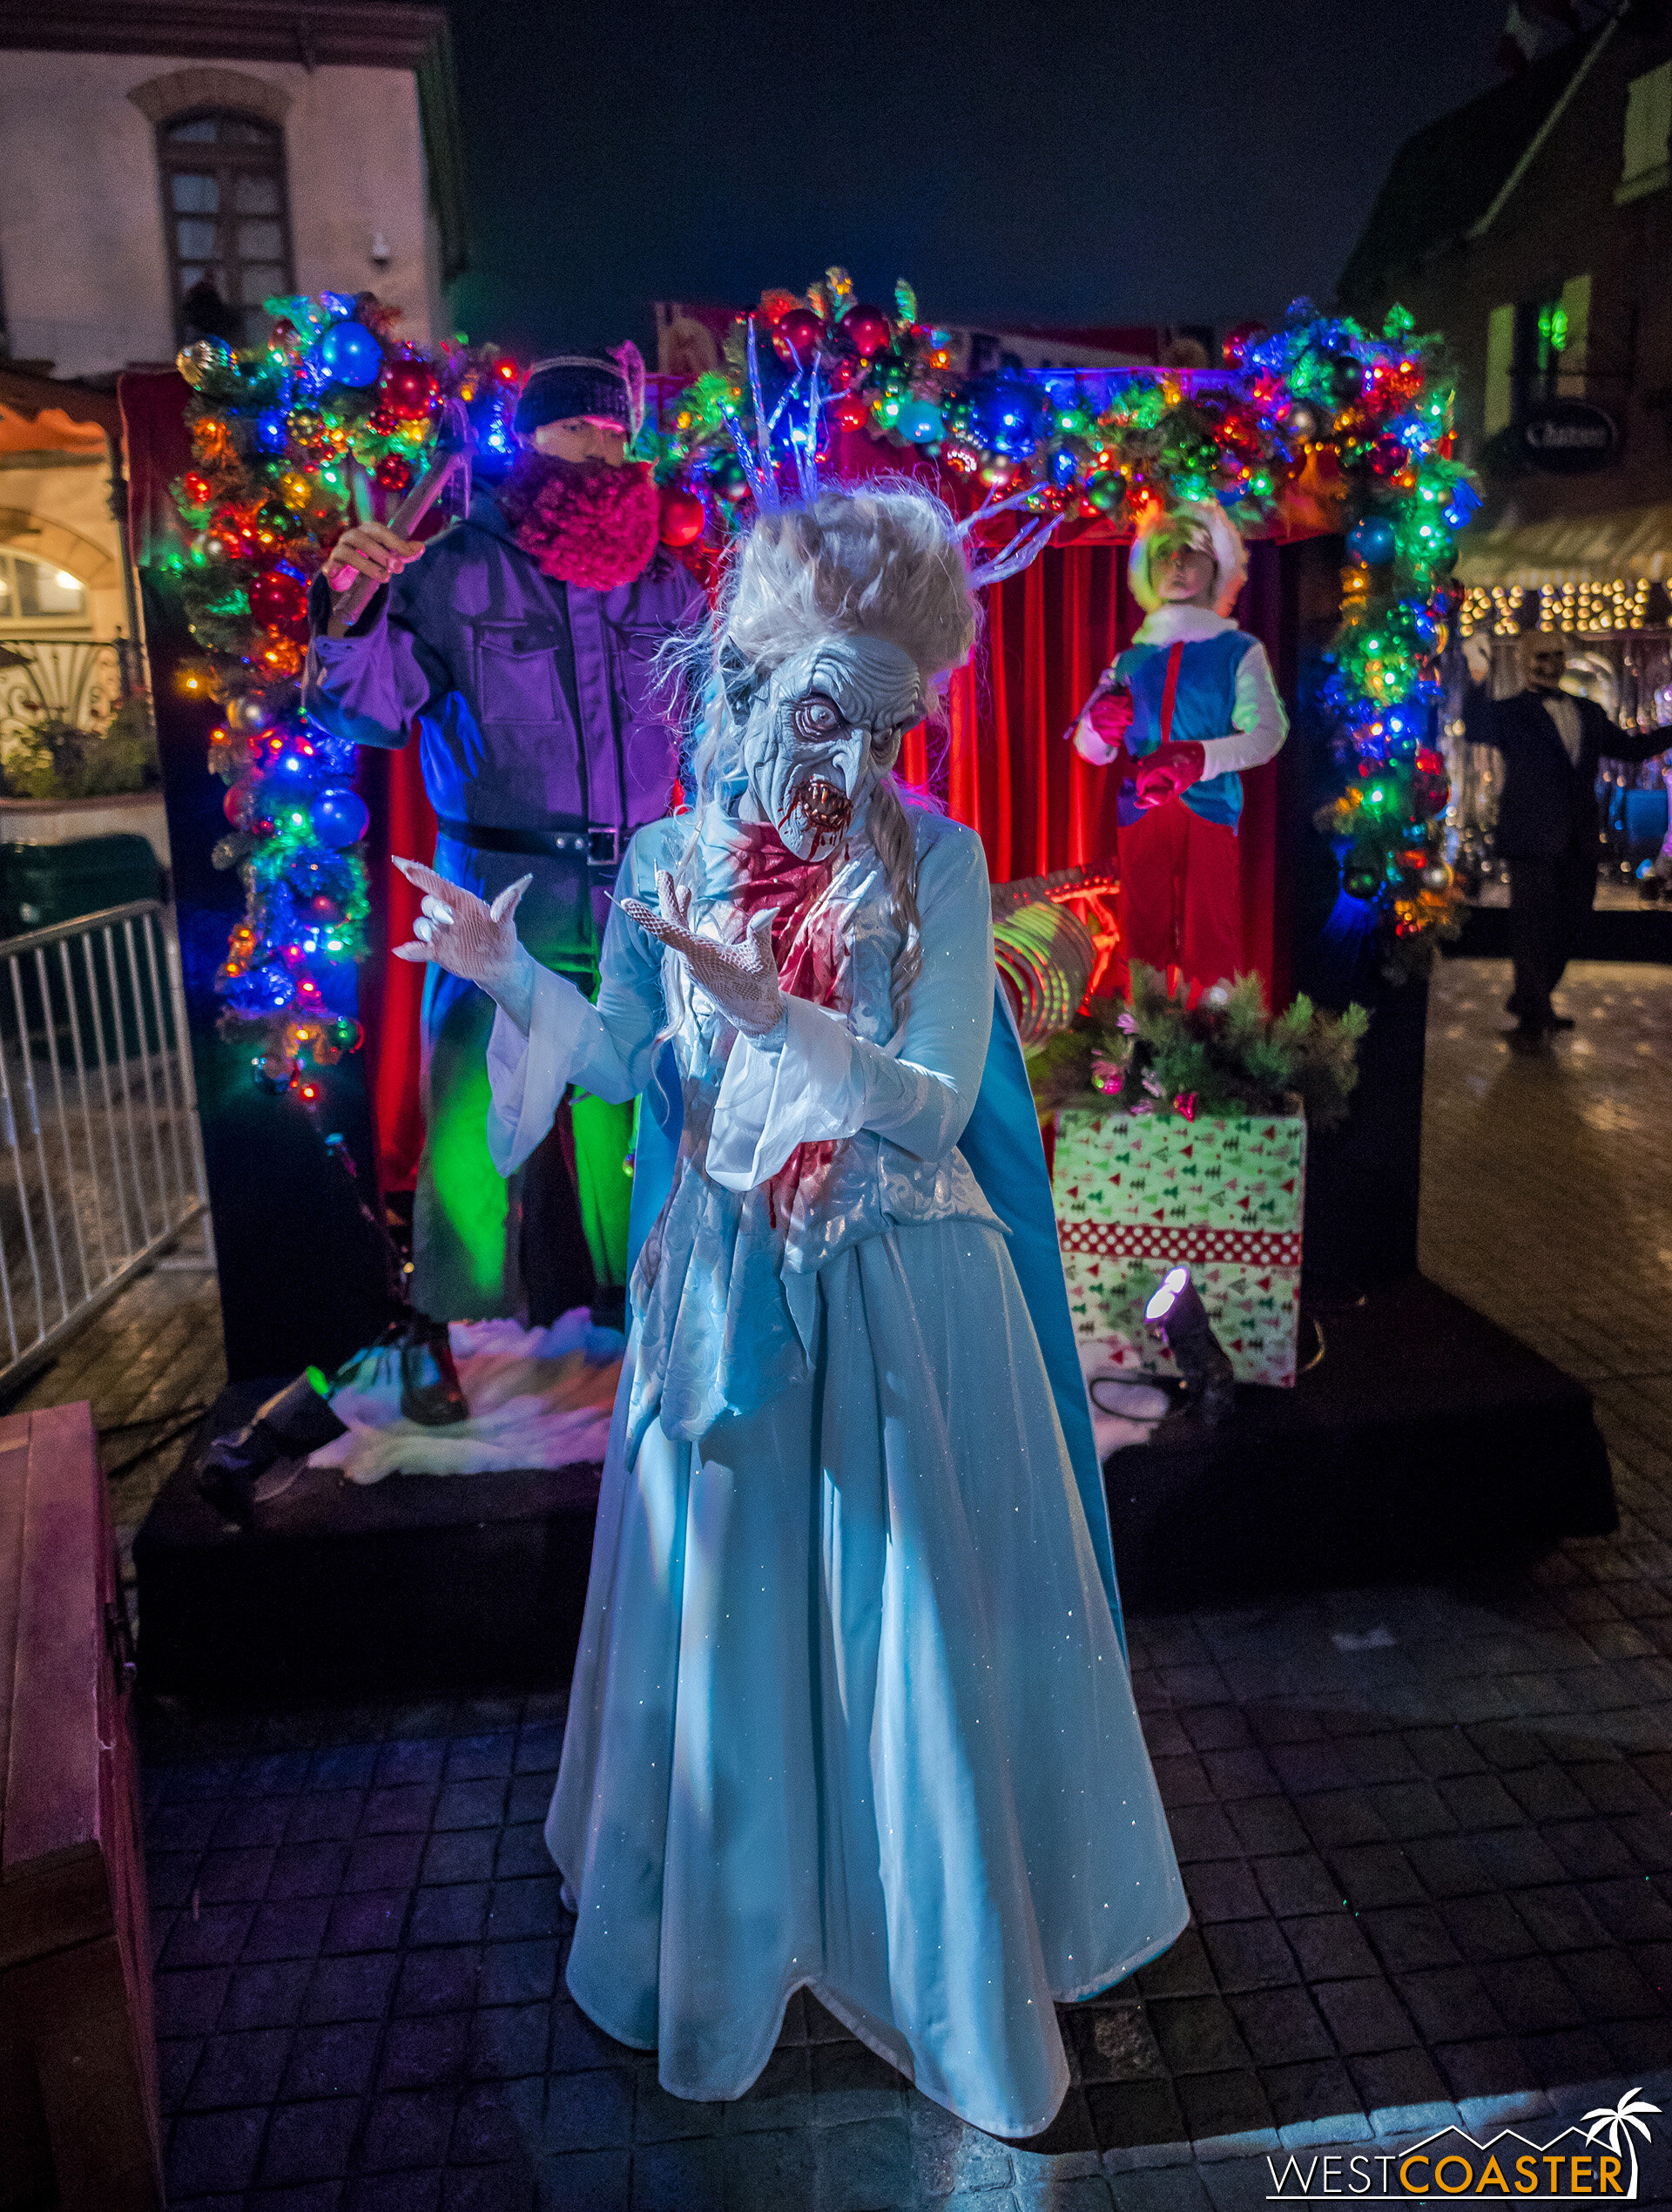 And you even get to meet Zombie Elsa!